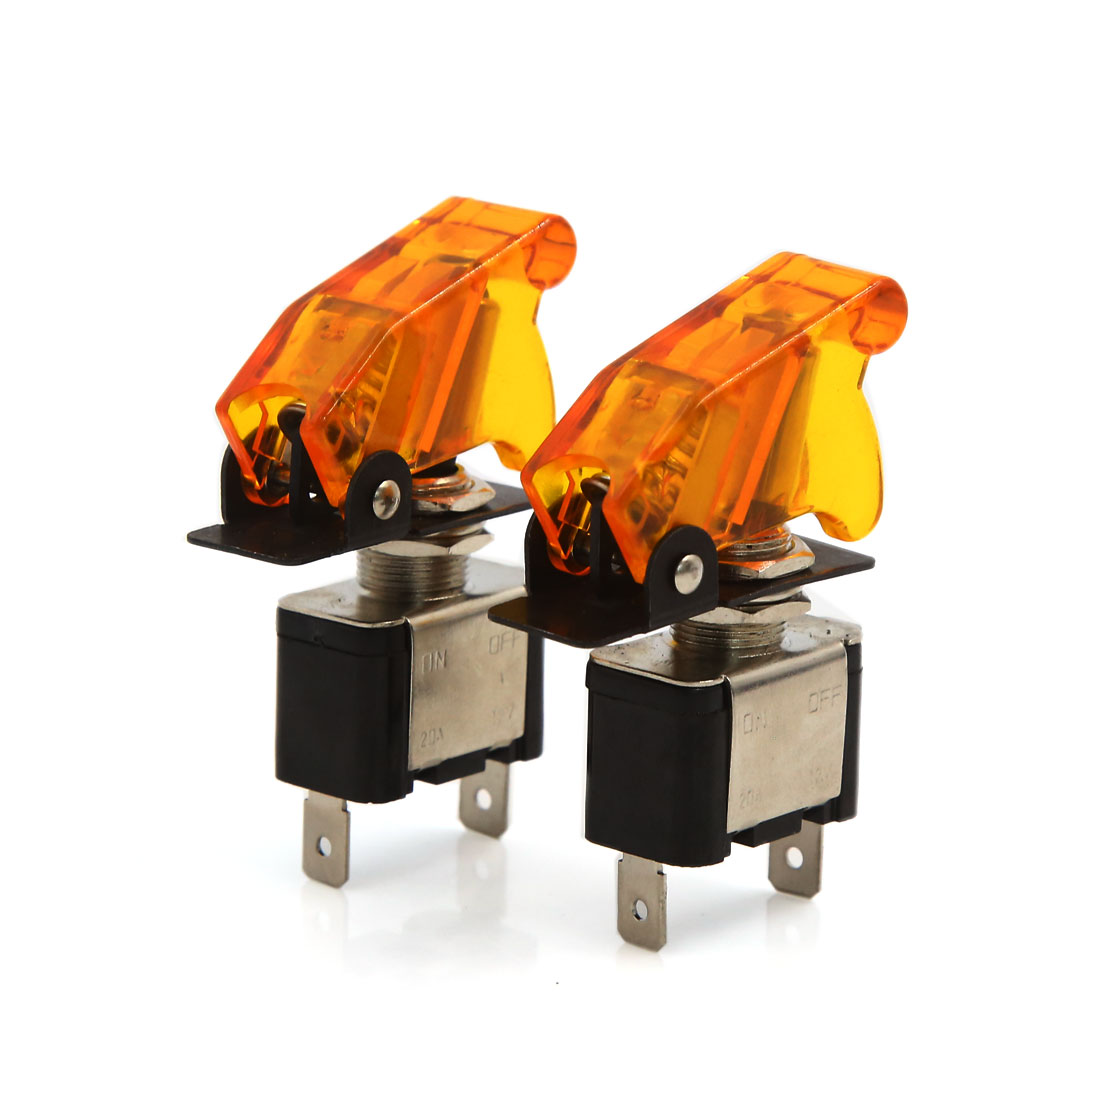 DC 12V 20A Orange Safety Cover SPST Car Toggle ON/OFF Control Switch 2Pcs